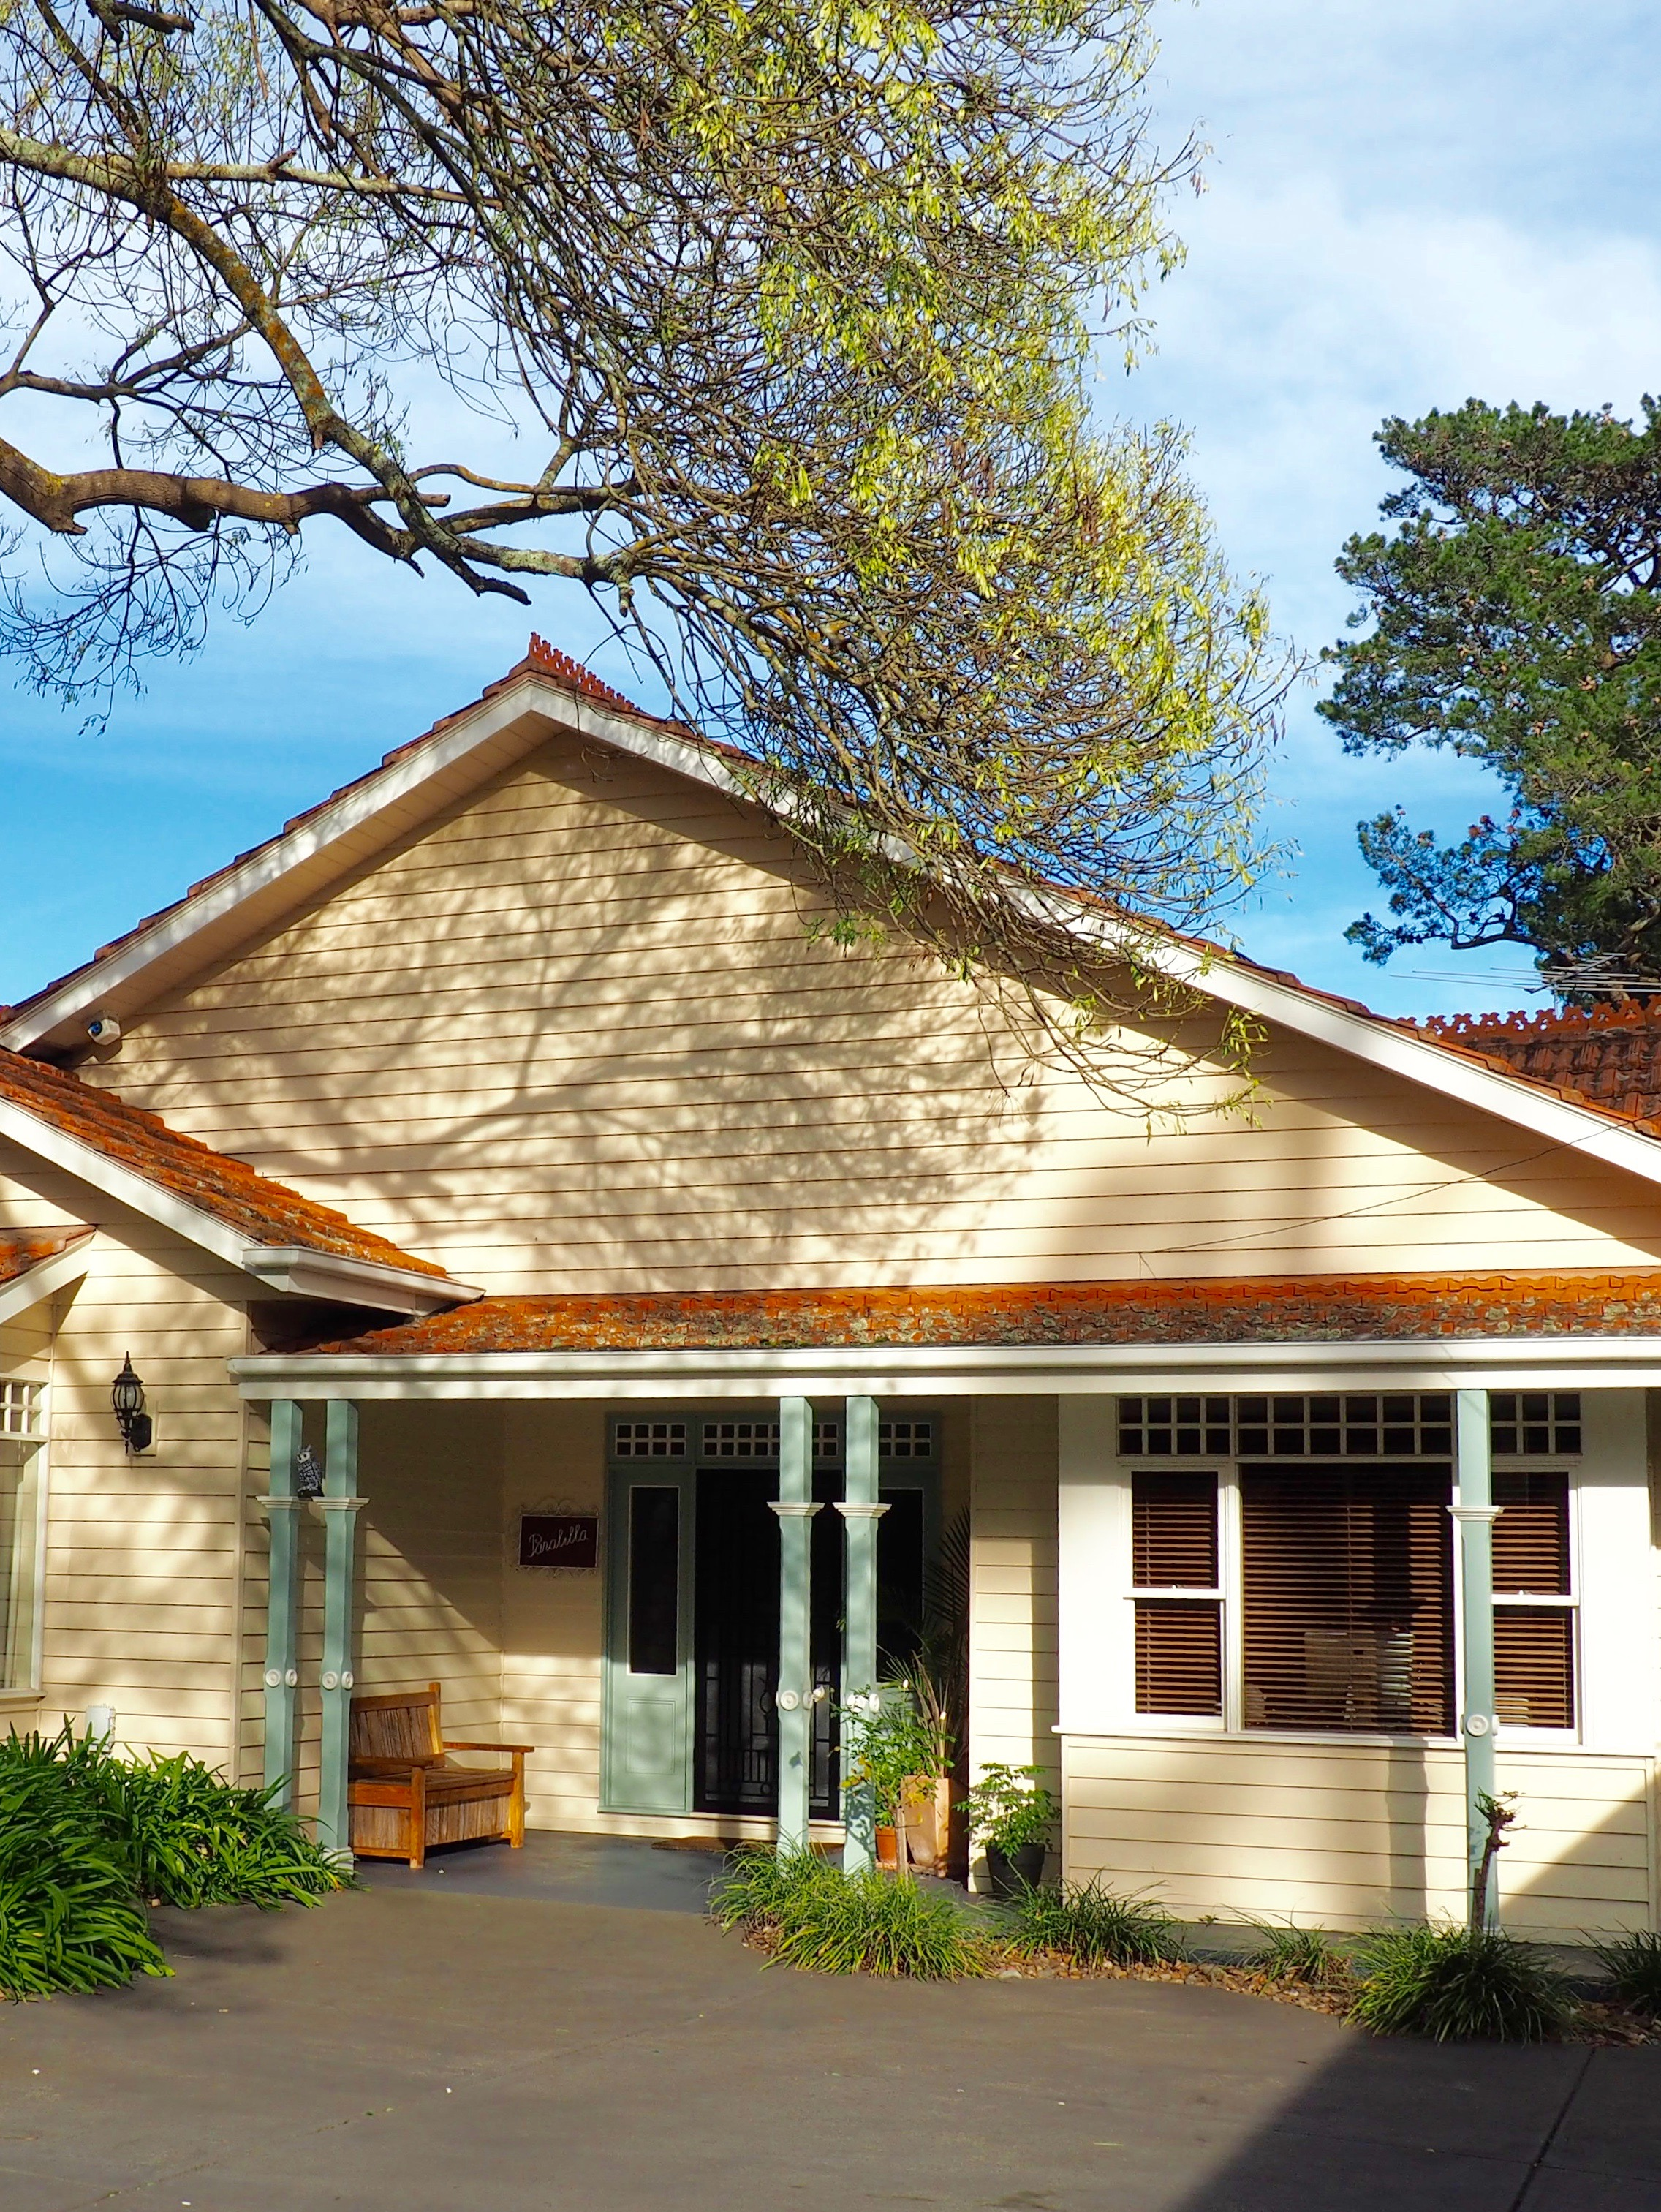 120 Humphries Road is home to Peninsula Endermologie and Cross Fit Mt Eliza